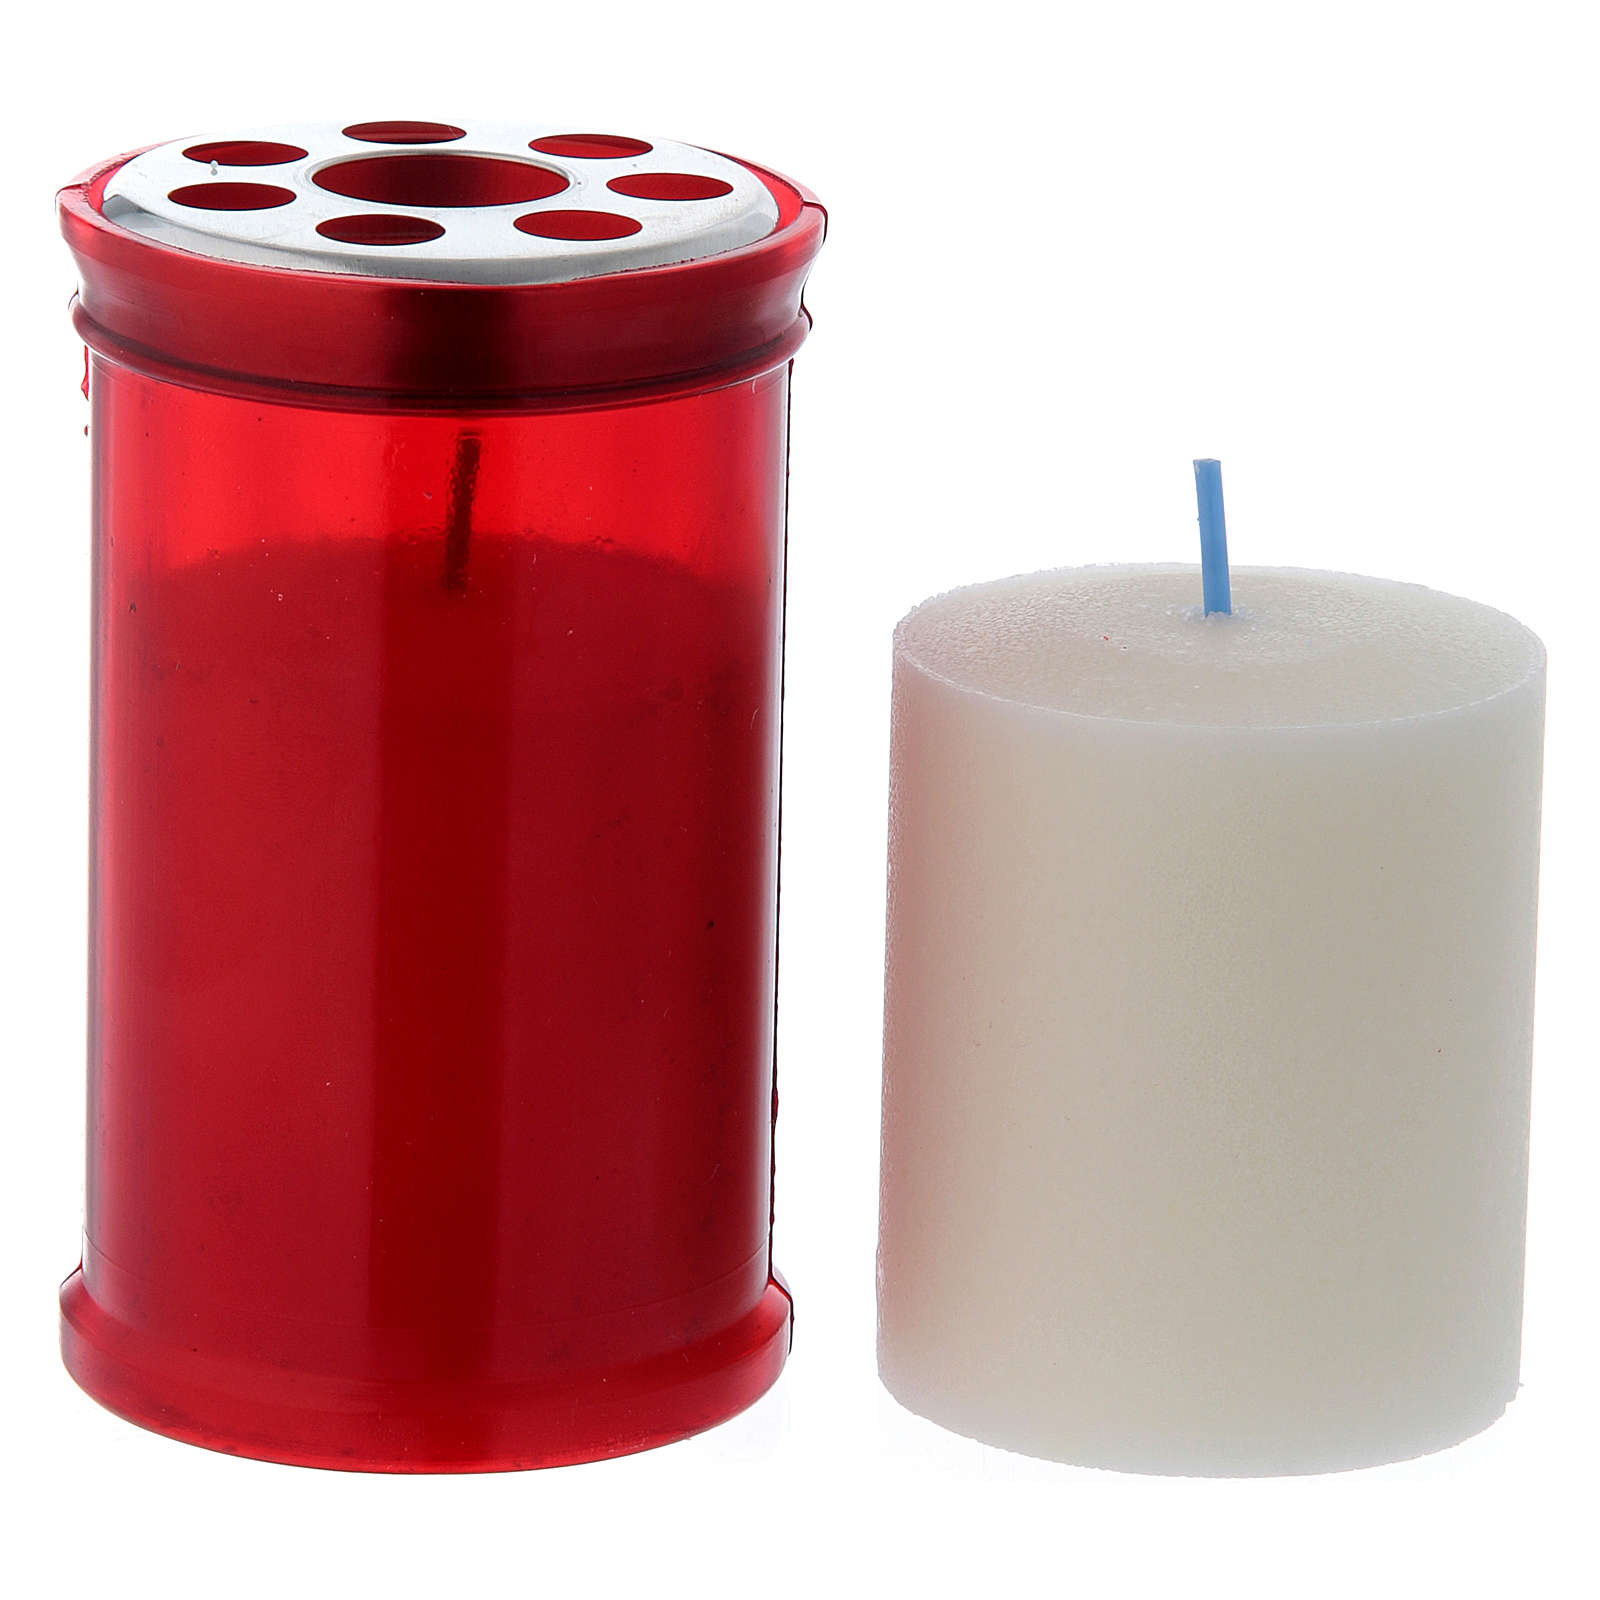 T30 red votive candle with white wax 3